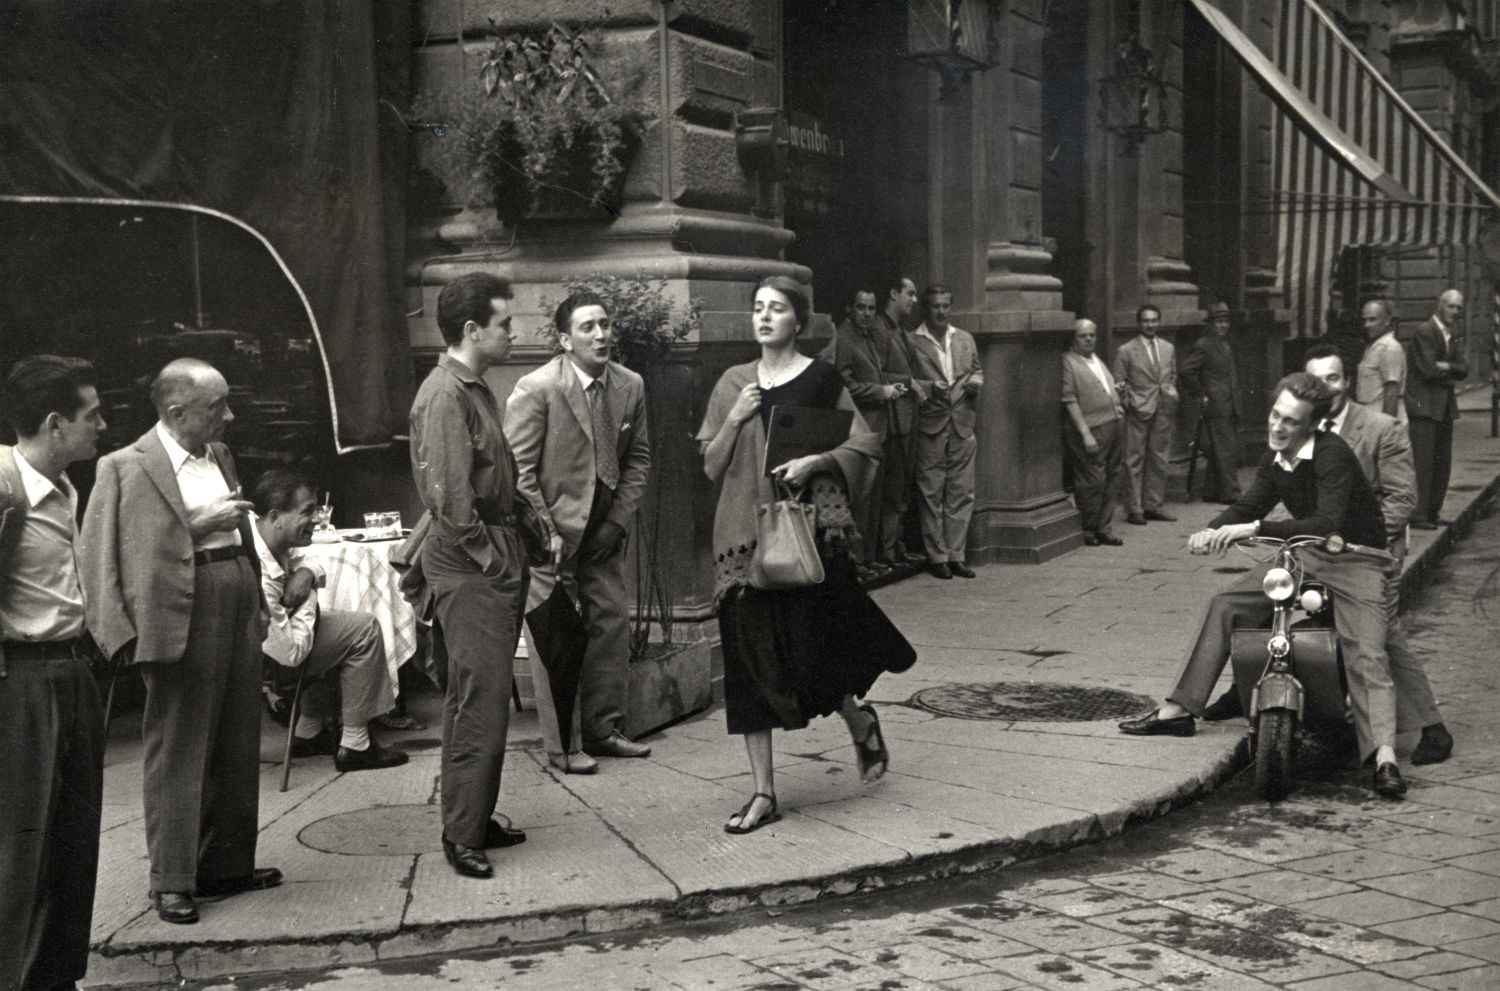 Ruth Orkin, American Girl in Italy, 1951 © Ruth Orkin. Courtesy of Howard Greenberg